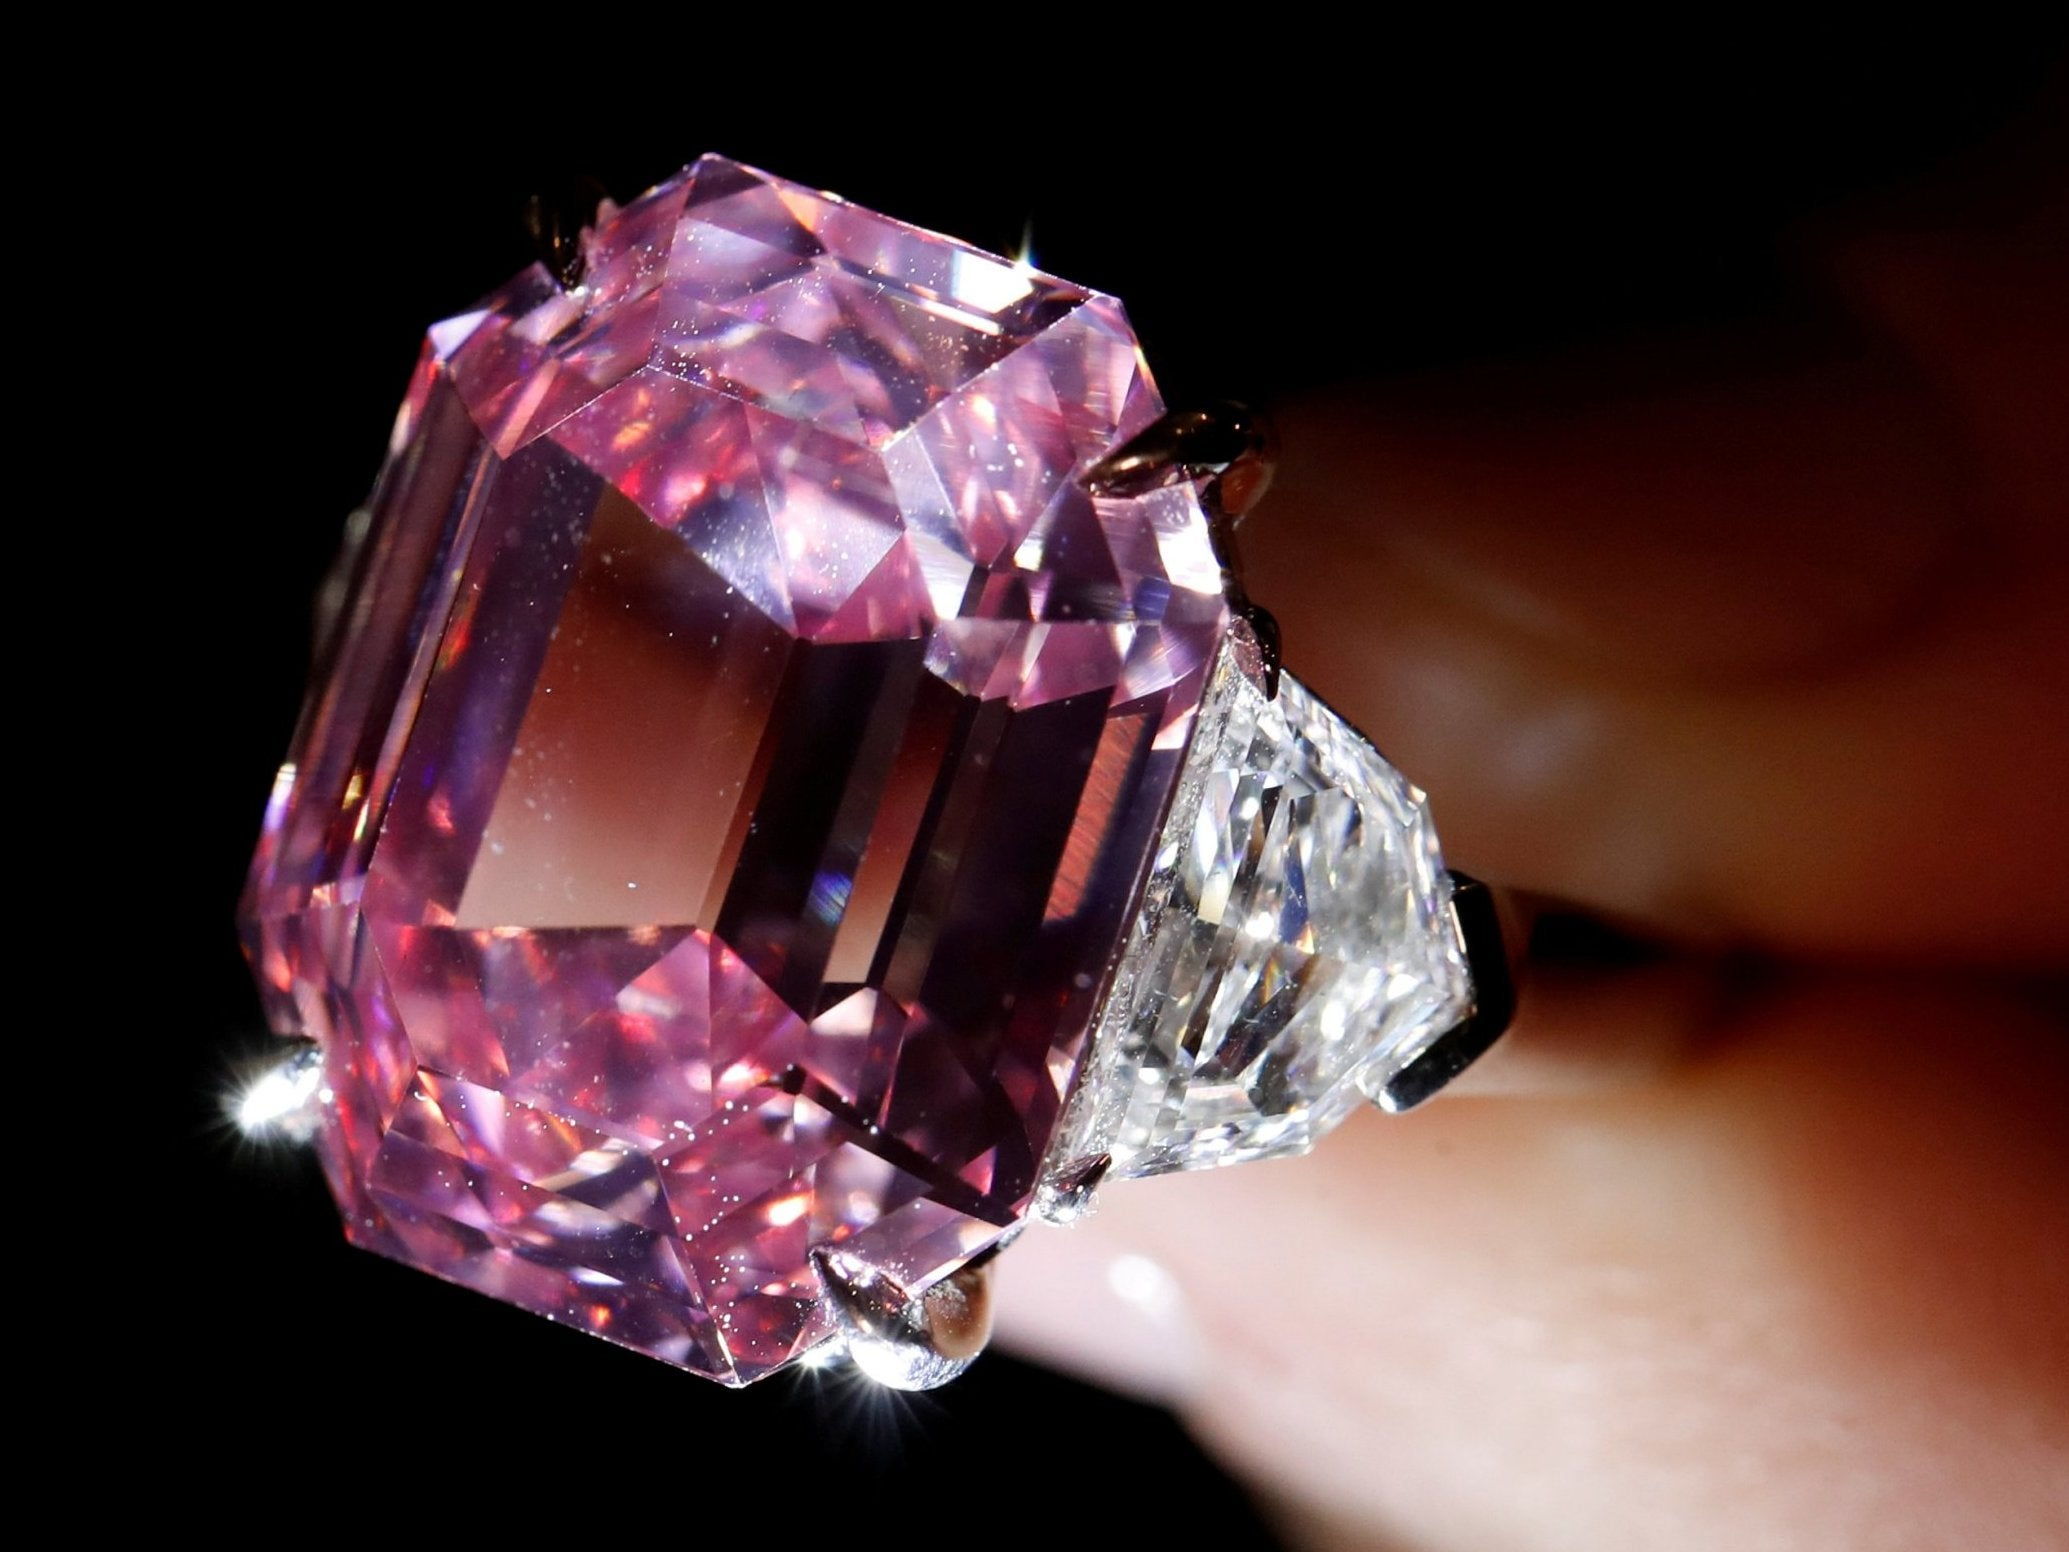 Rare pink diamond sells for world-record $50m at Christie's auction